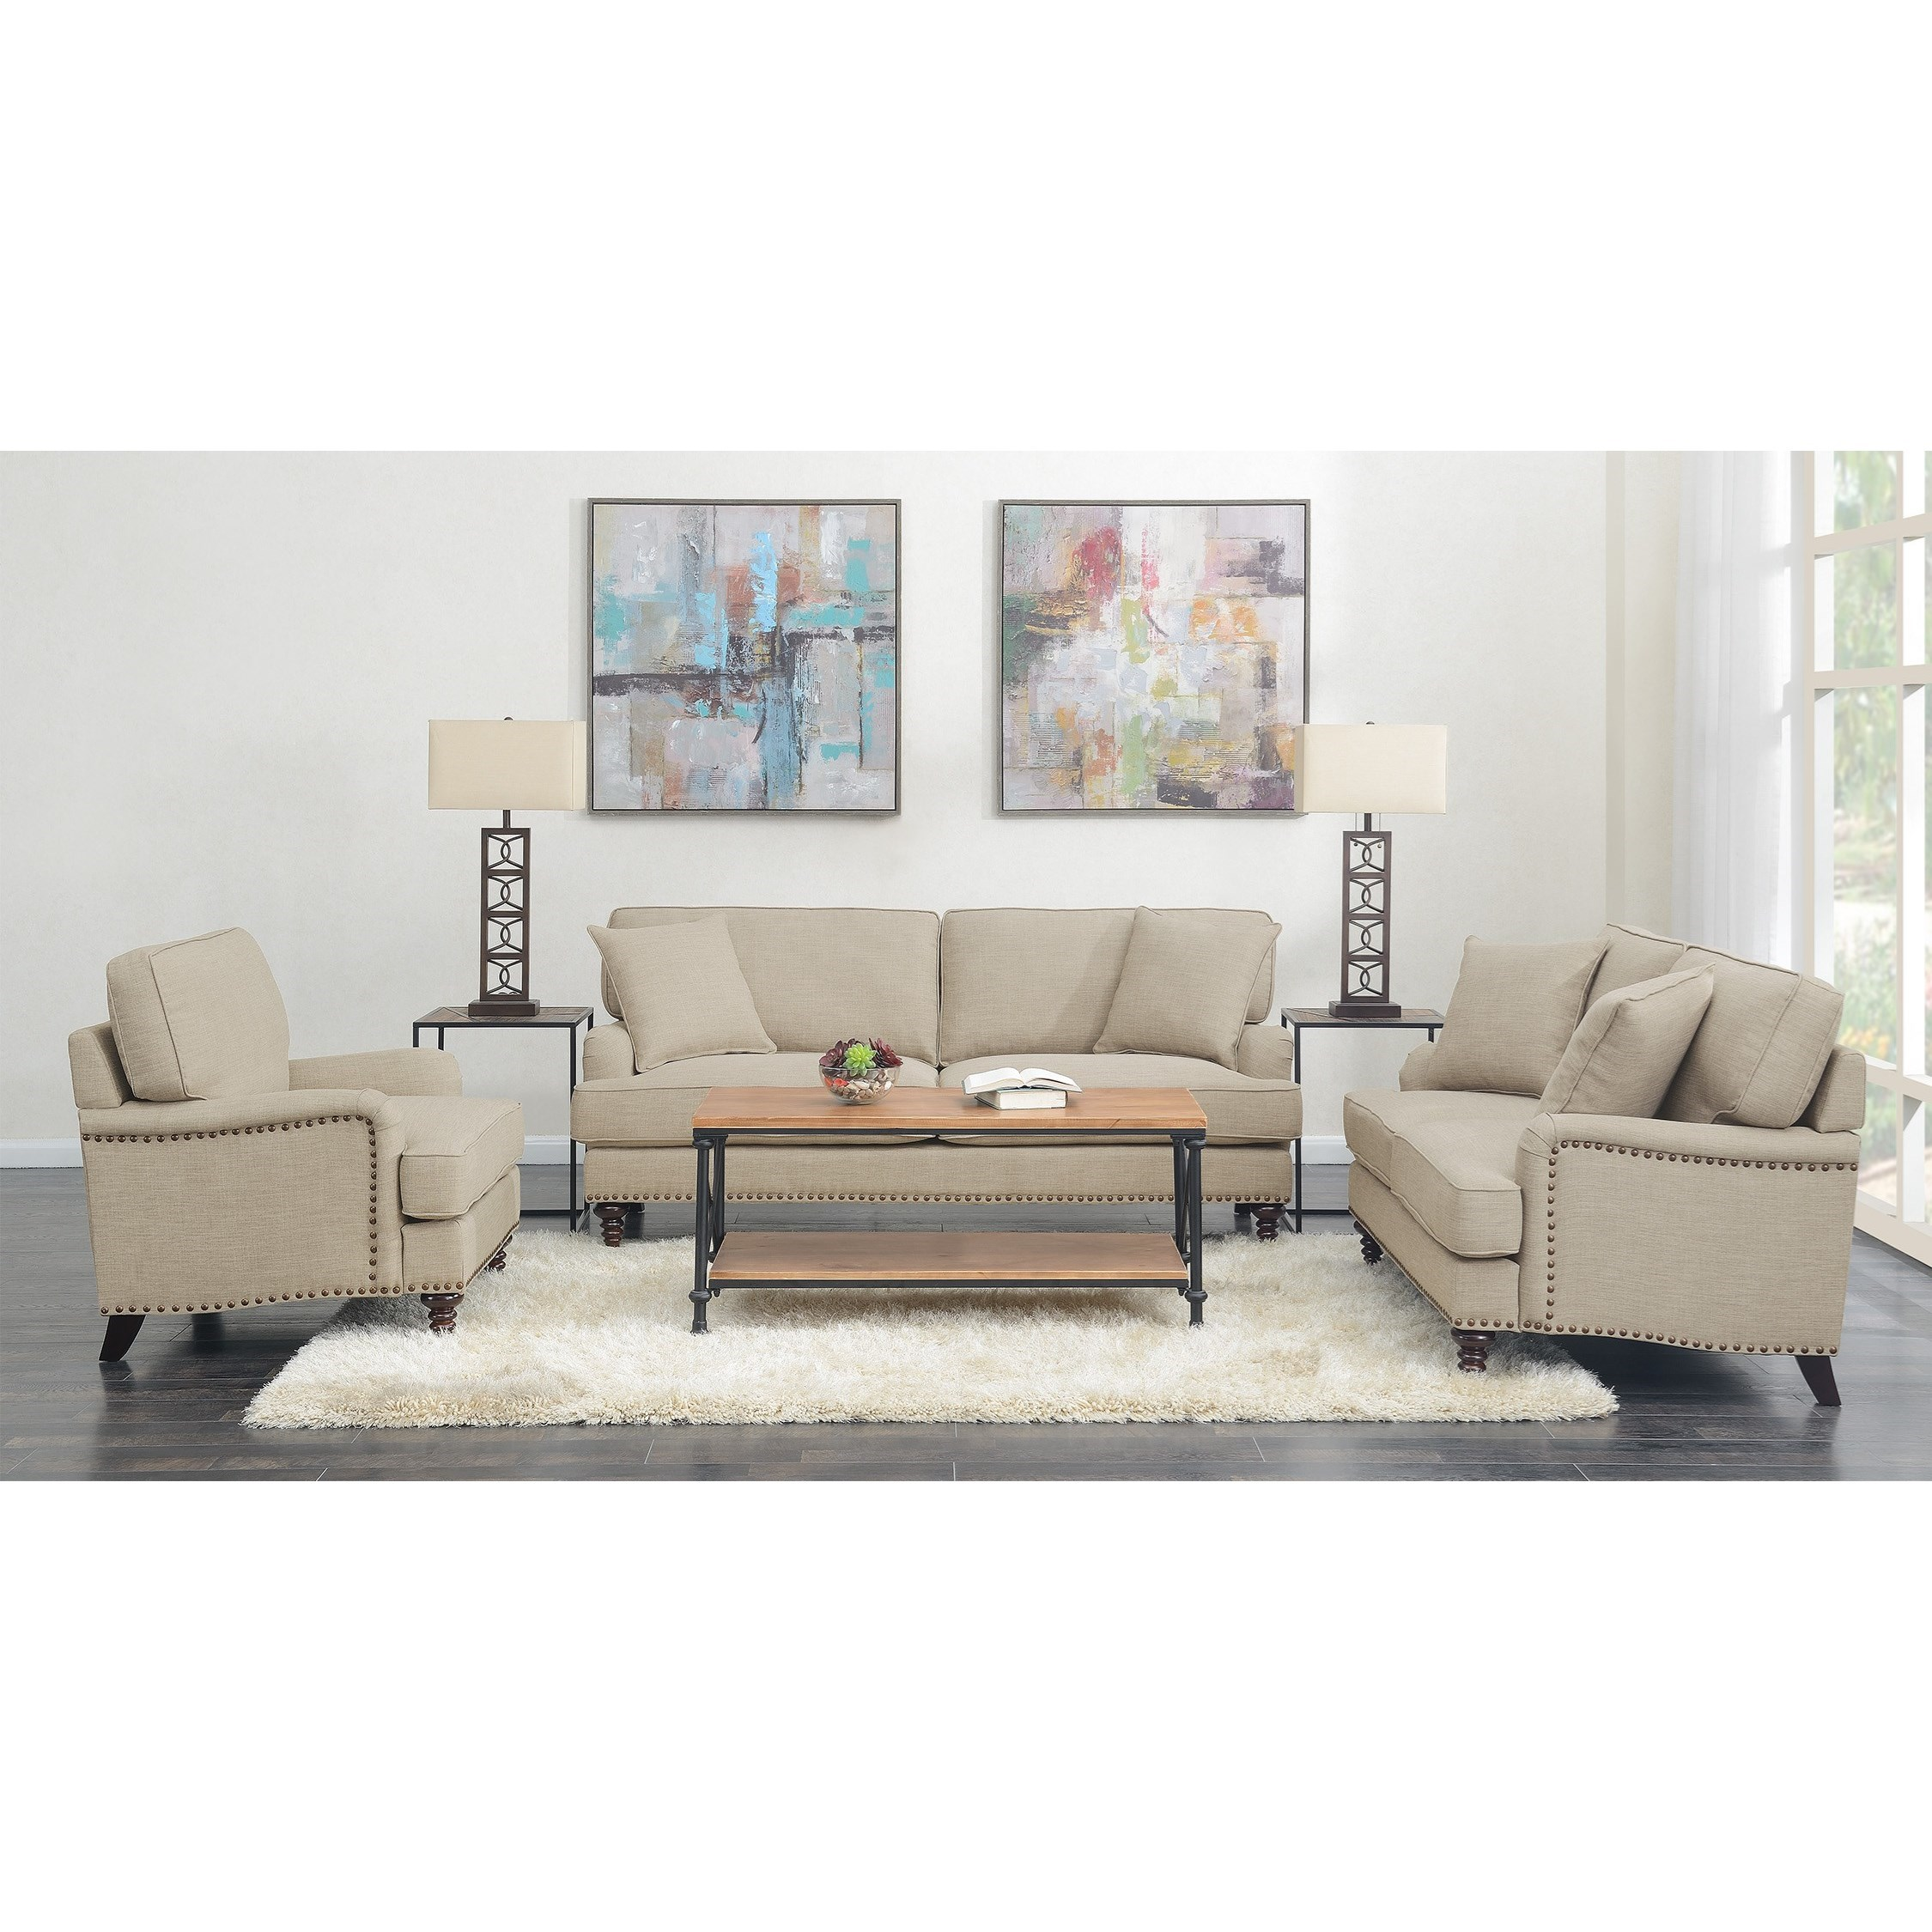 Abby 3PC Set-Sofa, Loveseat & Chair by Elements International at Lynn's Furniture & Mattress